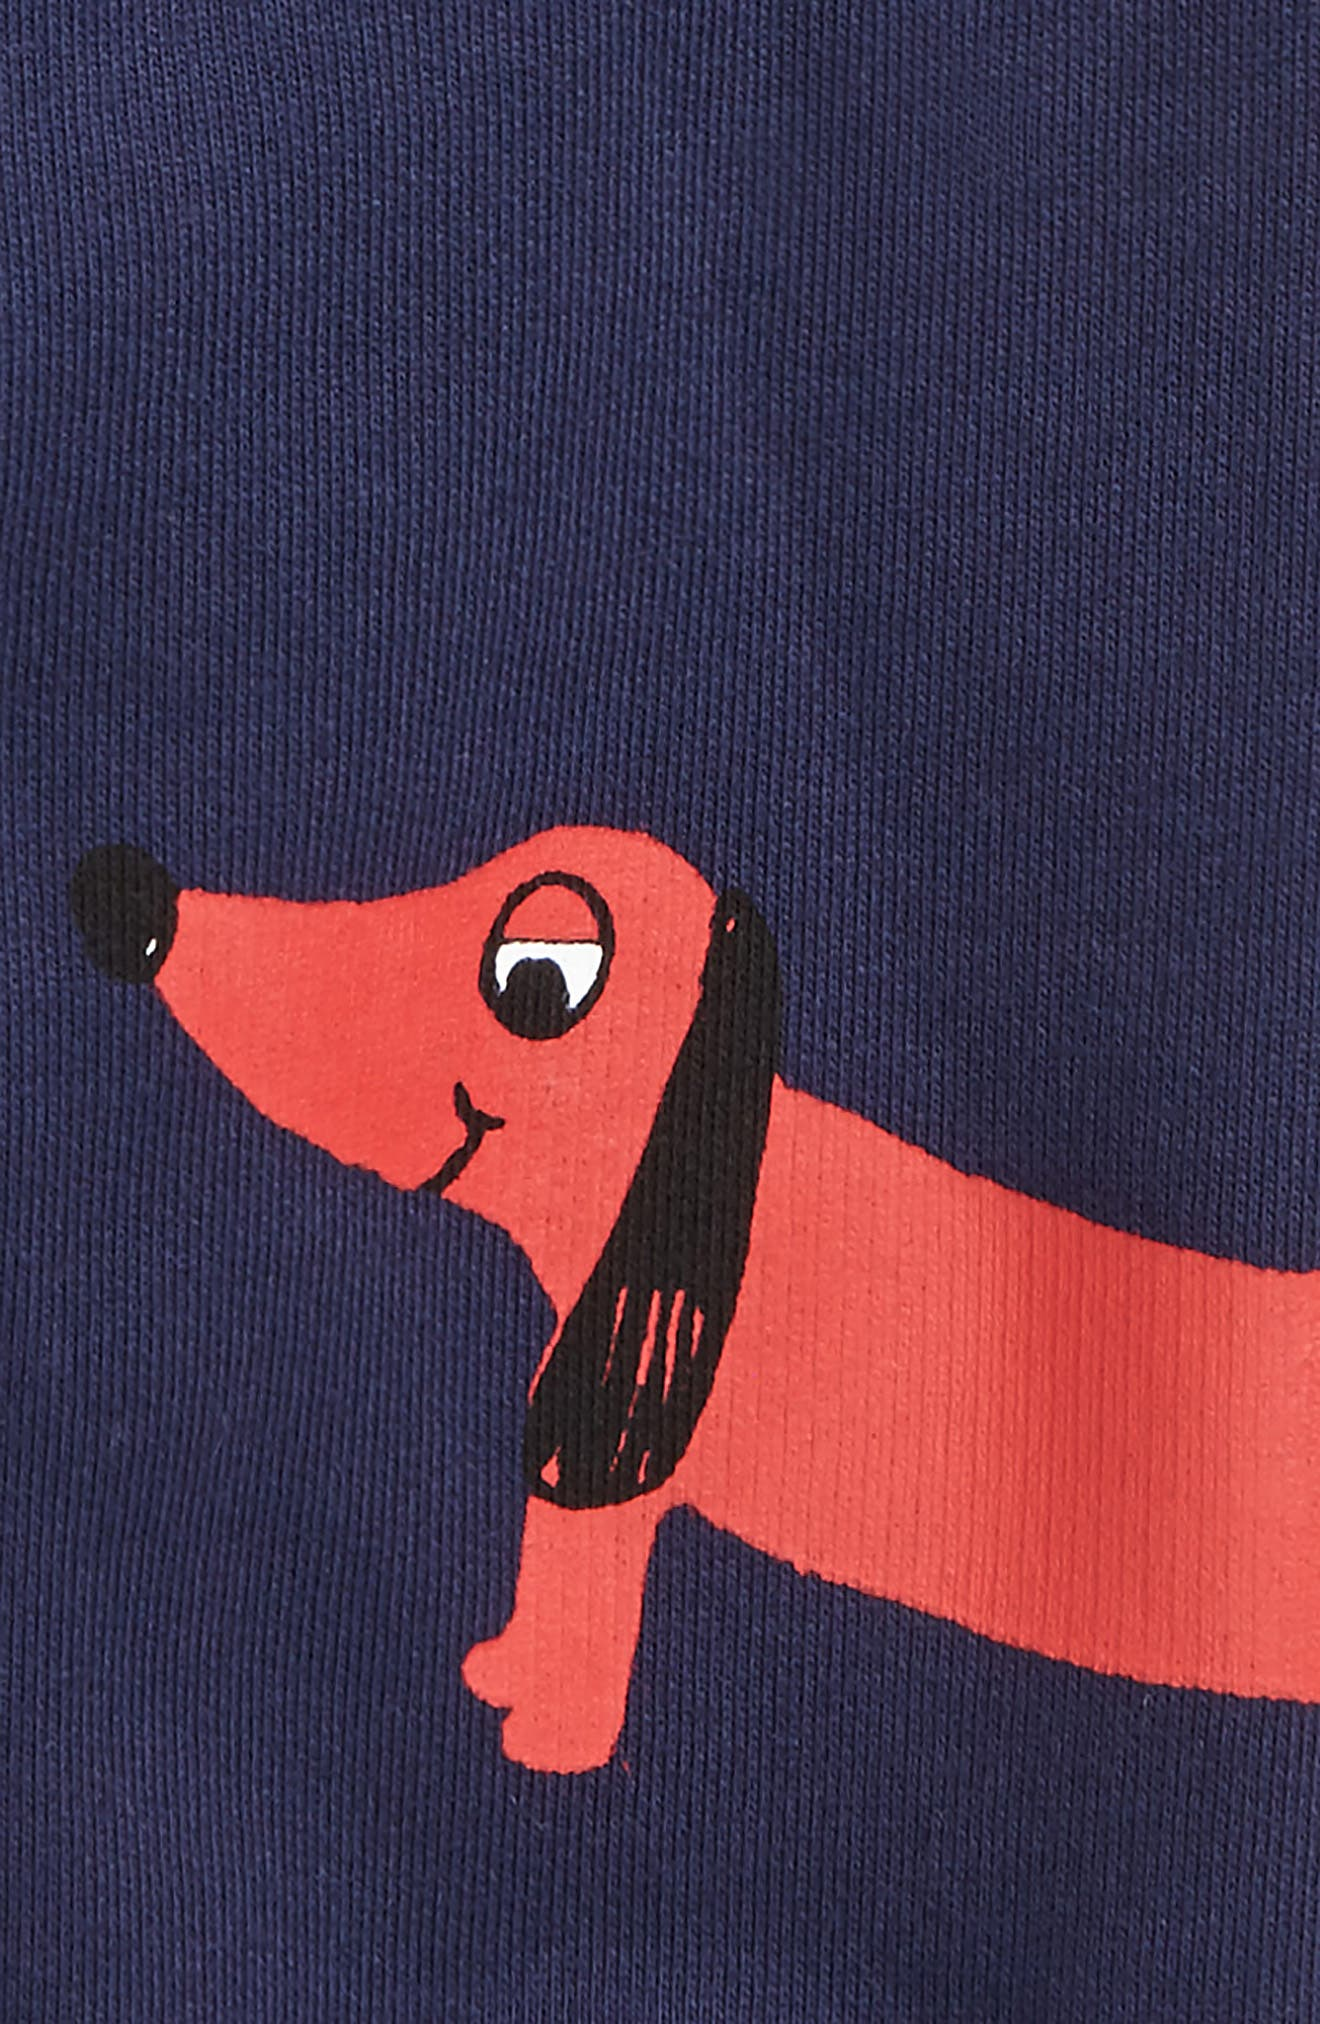 Dog Sweatpants,                             Alternate thumbnail 3, color,                             Navy